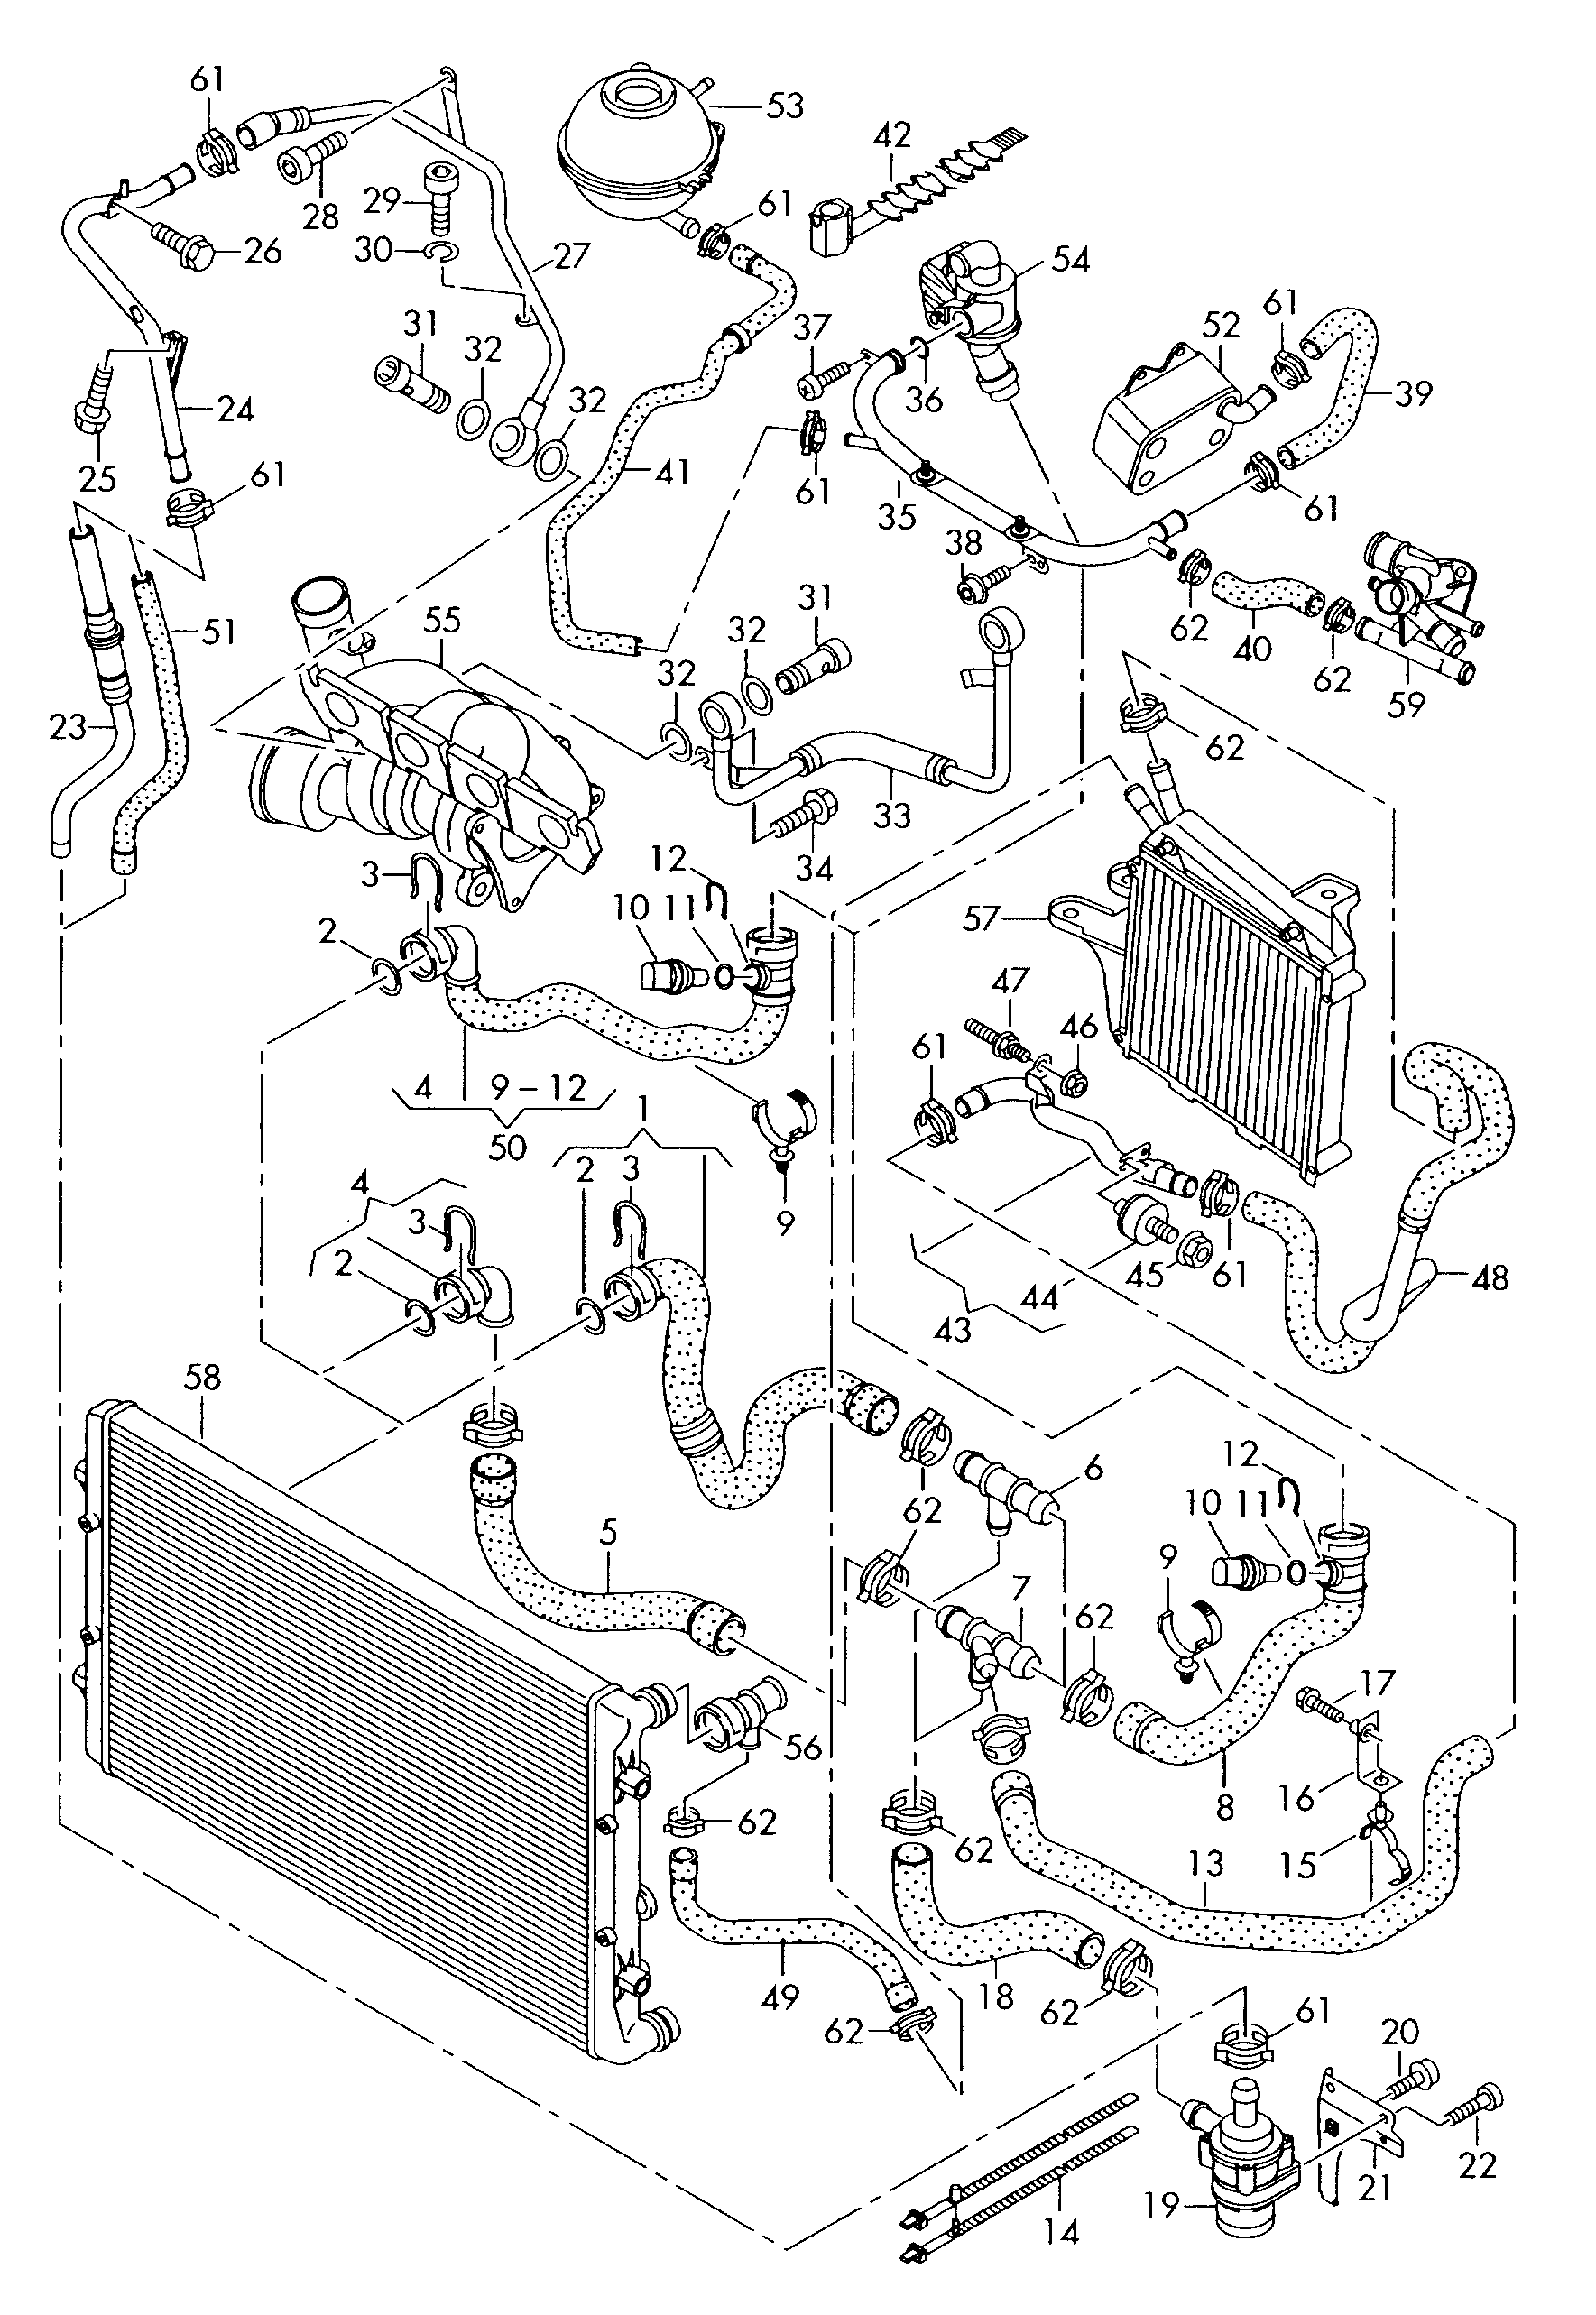 2001 Vw Jetta Coolant System Diagram